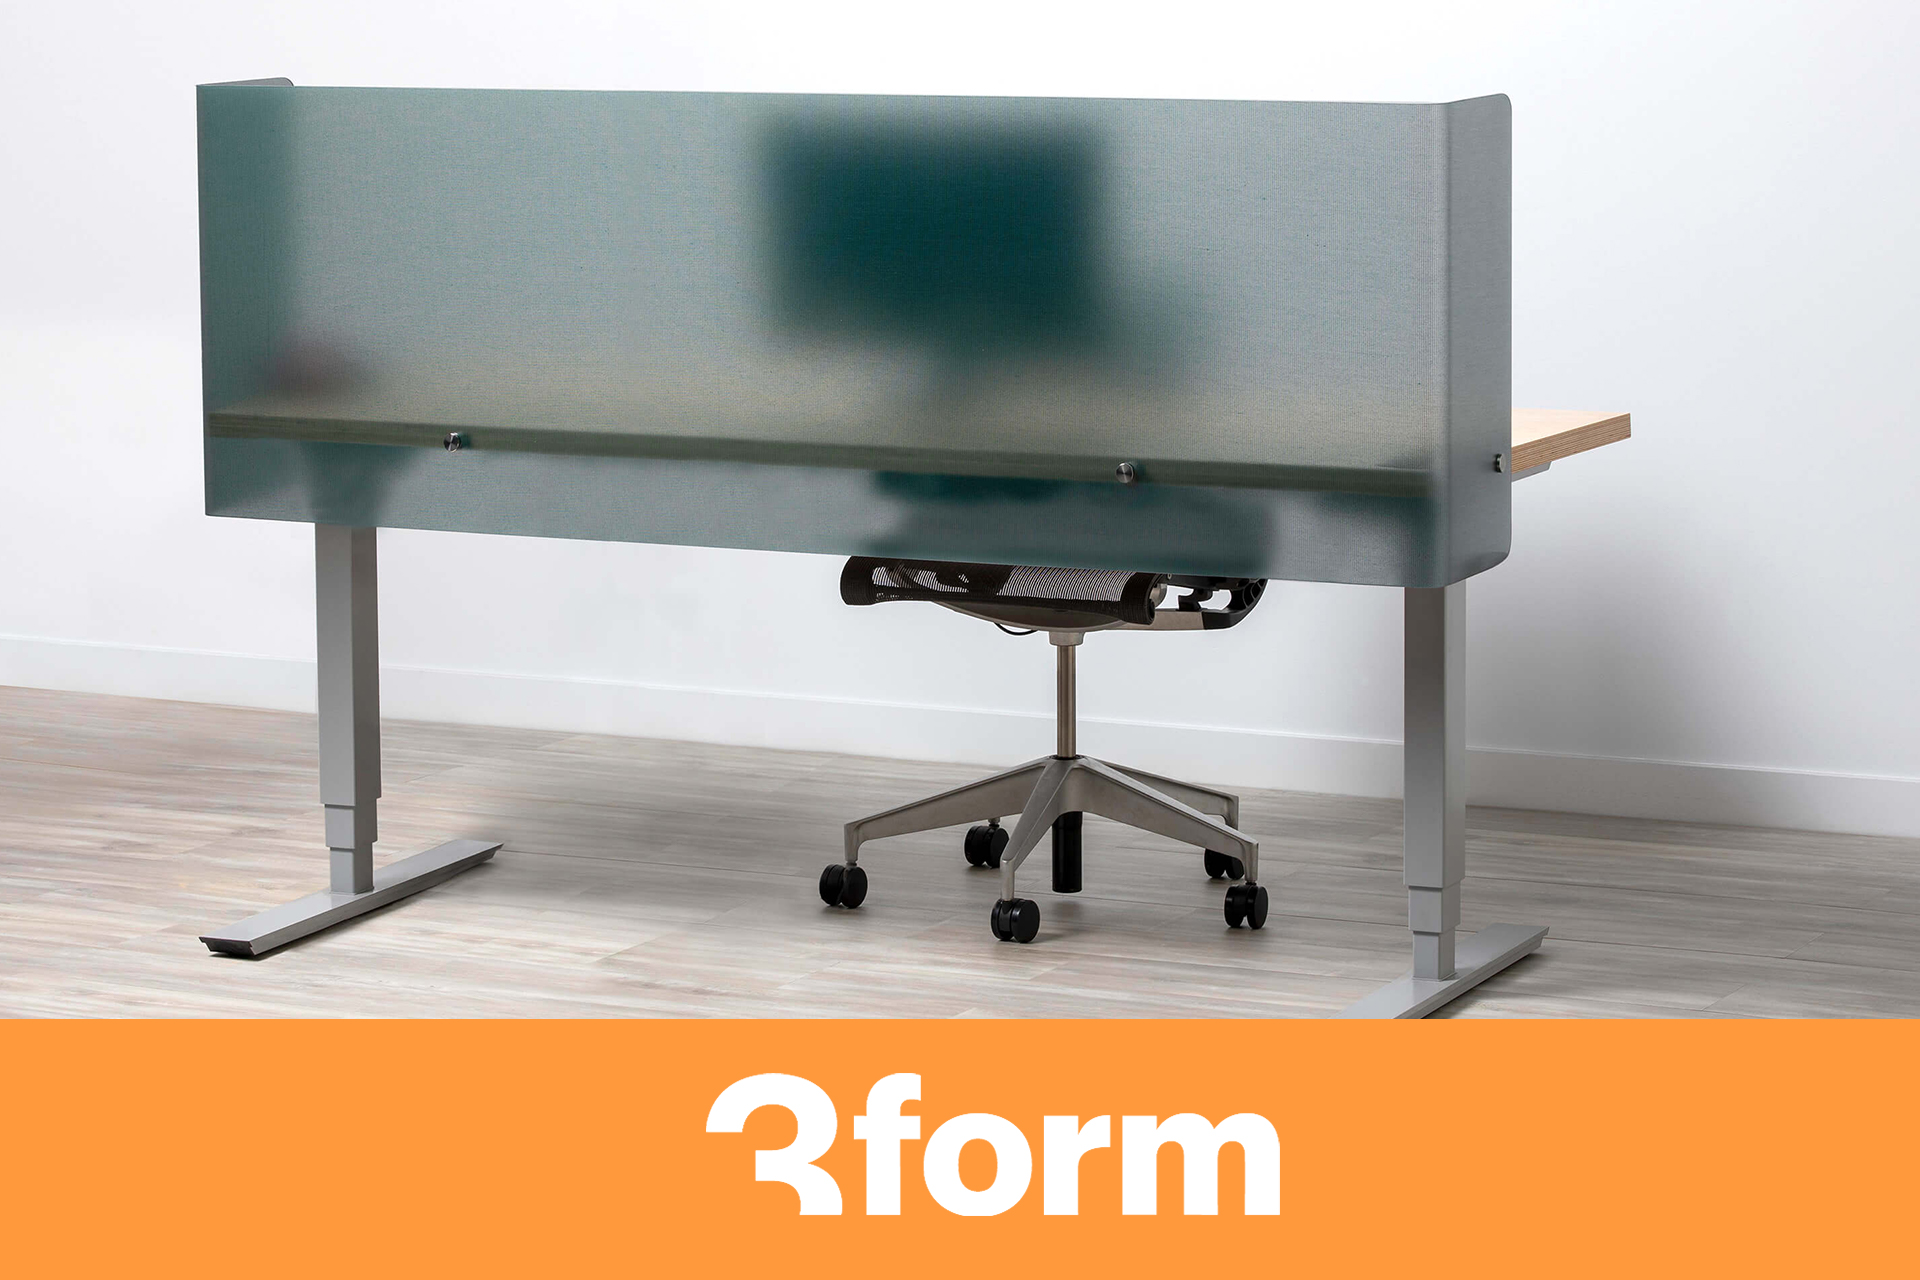 3form Desk Partition Products For Physical Distancing